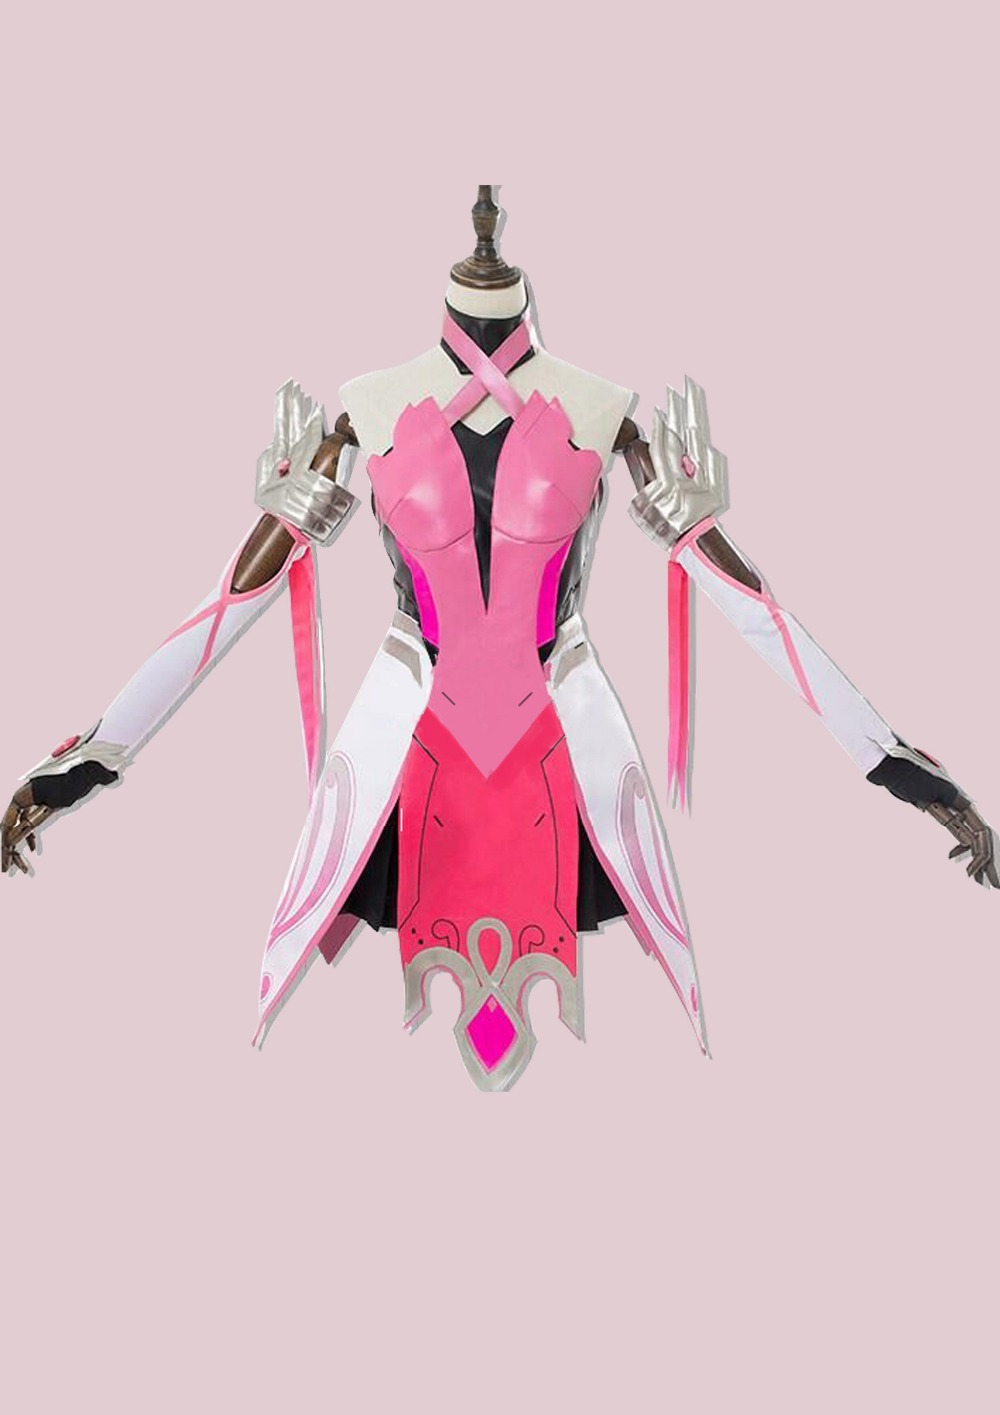 OW Mercy Cosplay pink suit mercy cosplay costume Mercy Angela Ziegler Pink Cosplay Costume 1